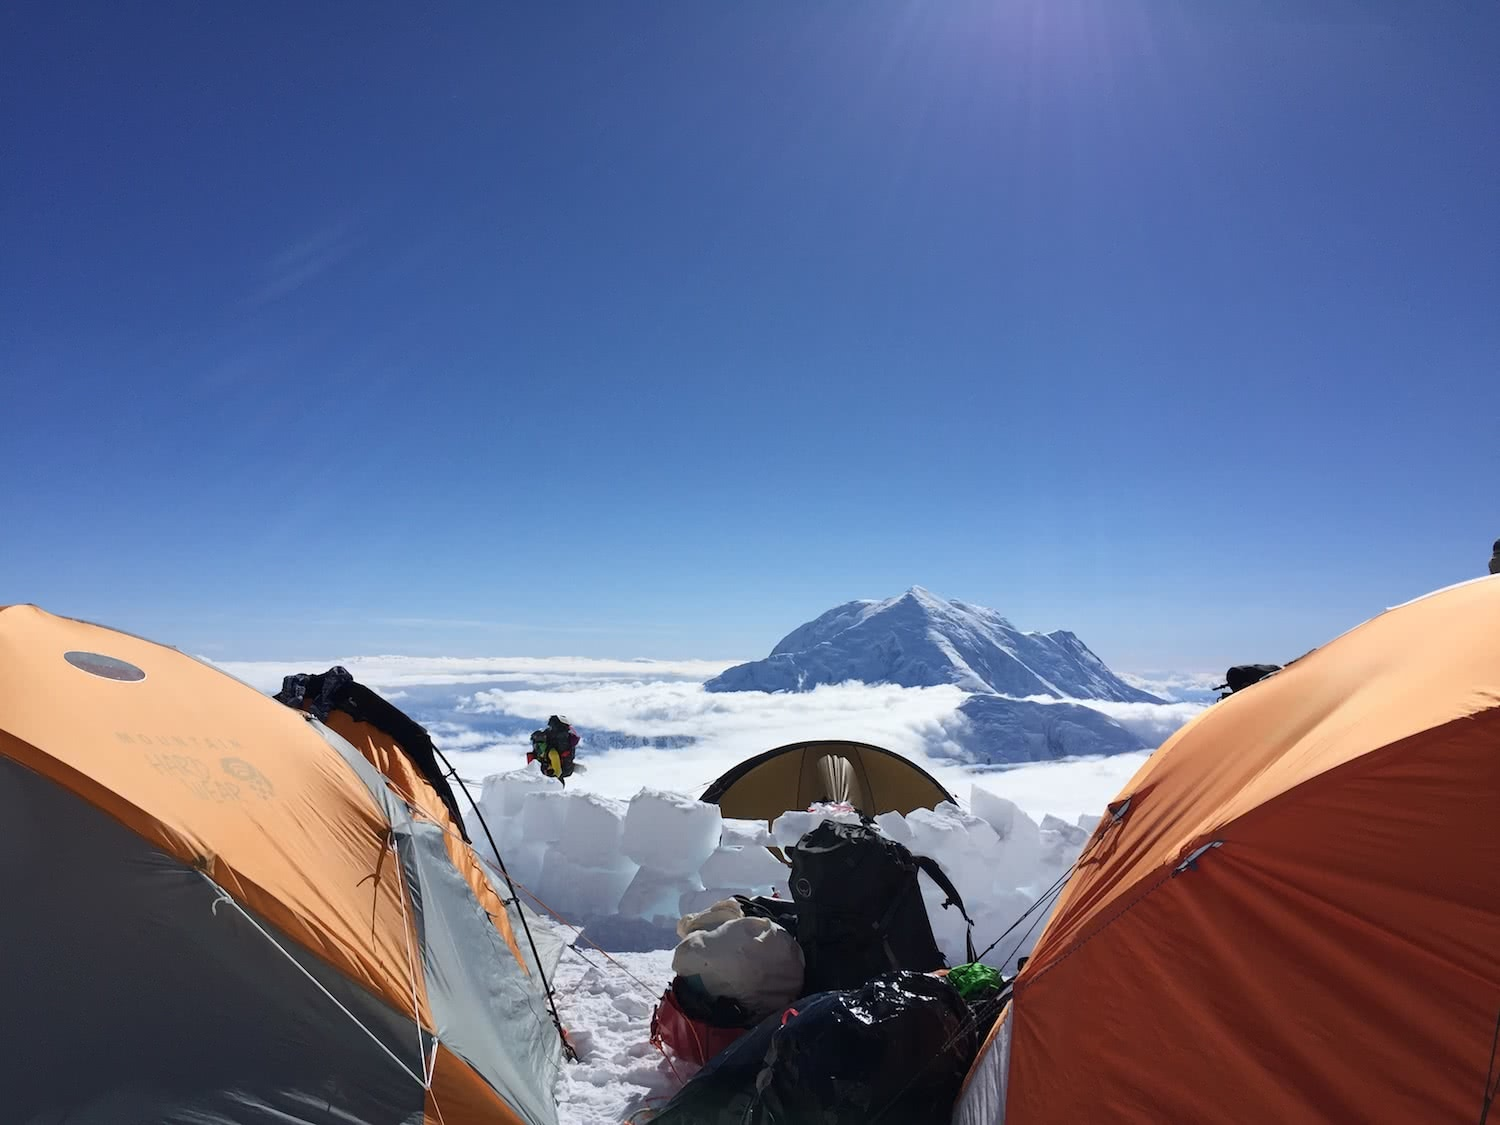 Camp 2 on Denali, mountaineering, dominic douglas, tents, pro climbers